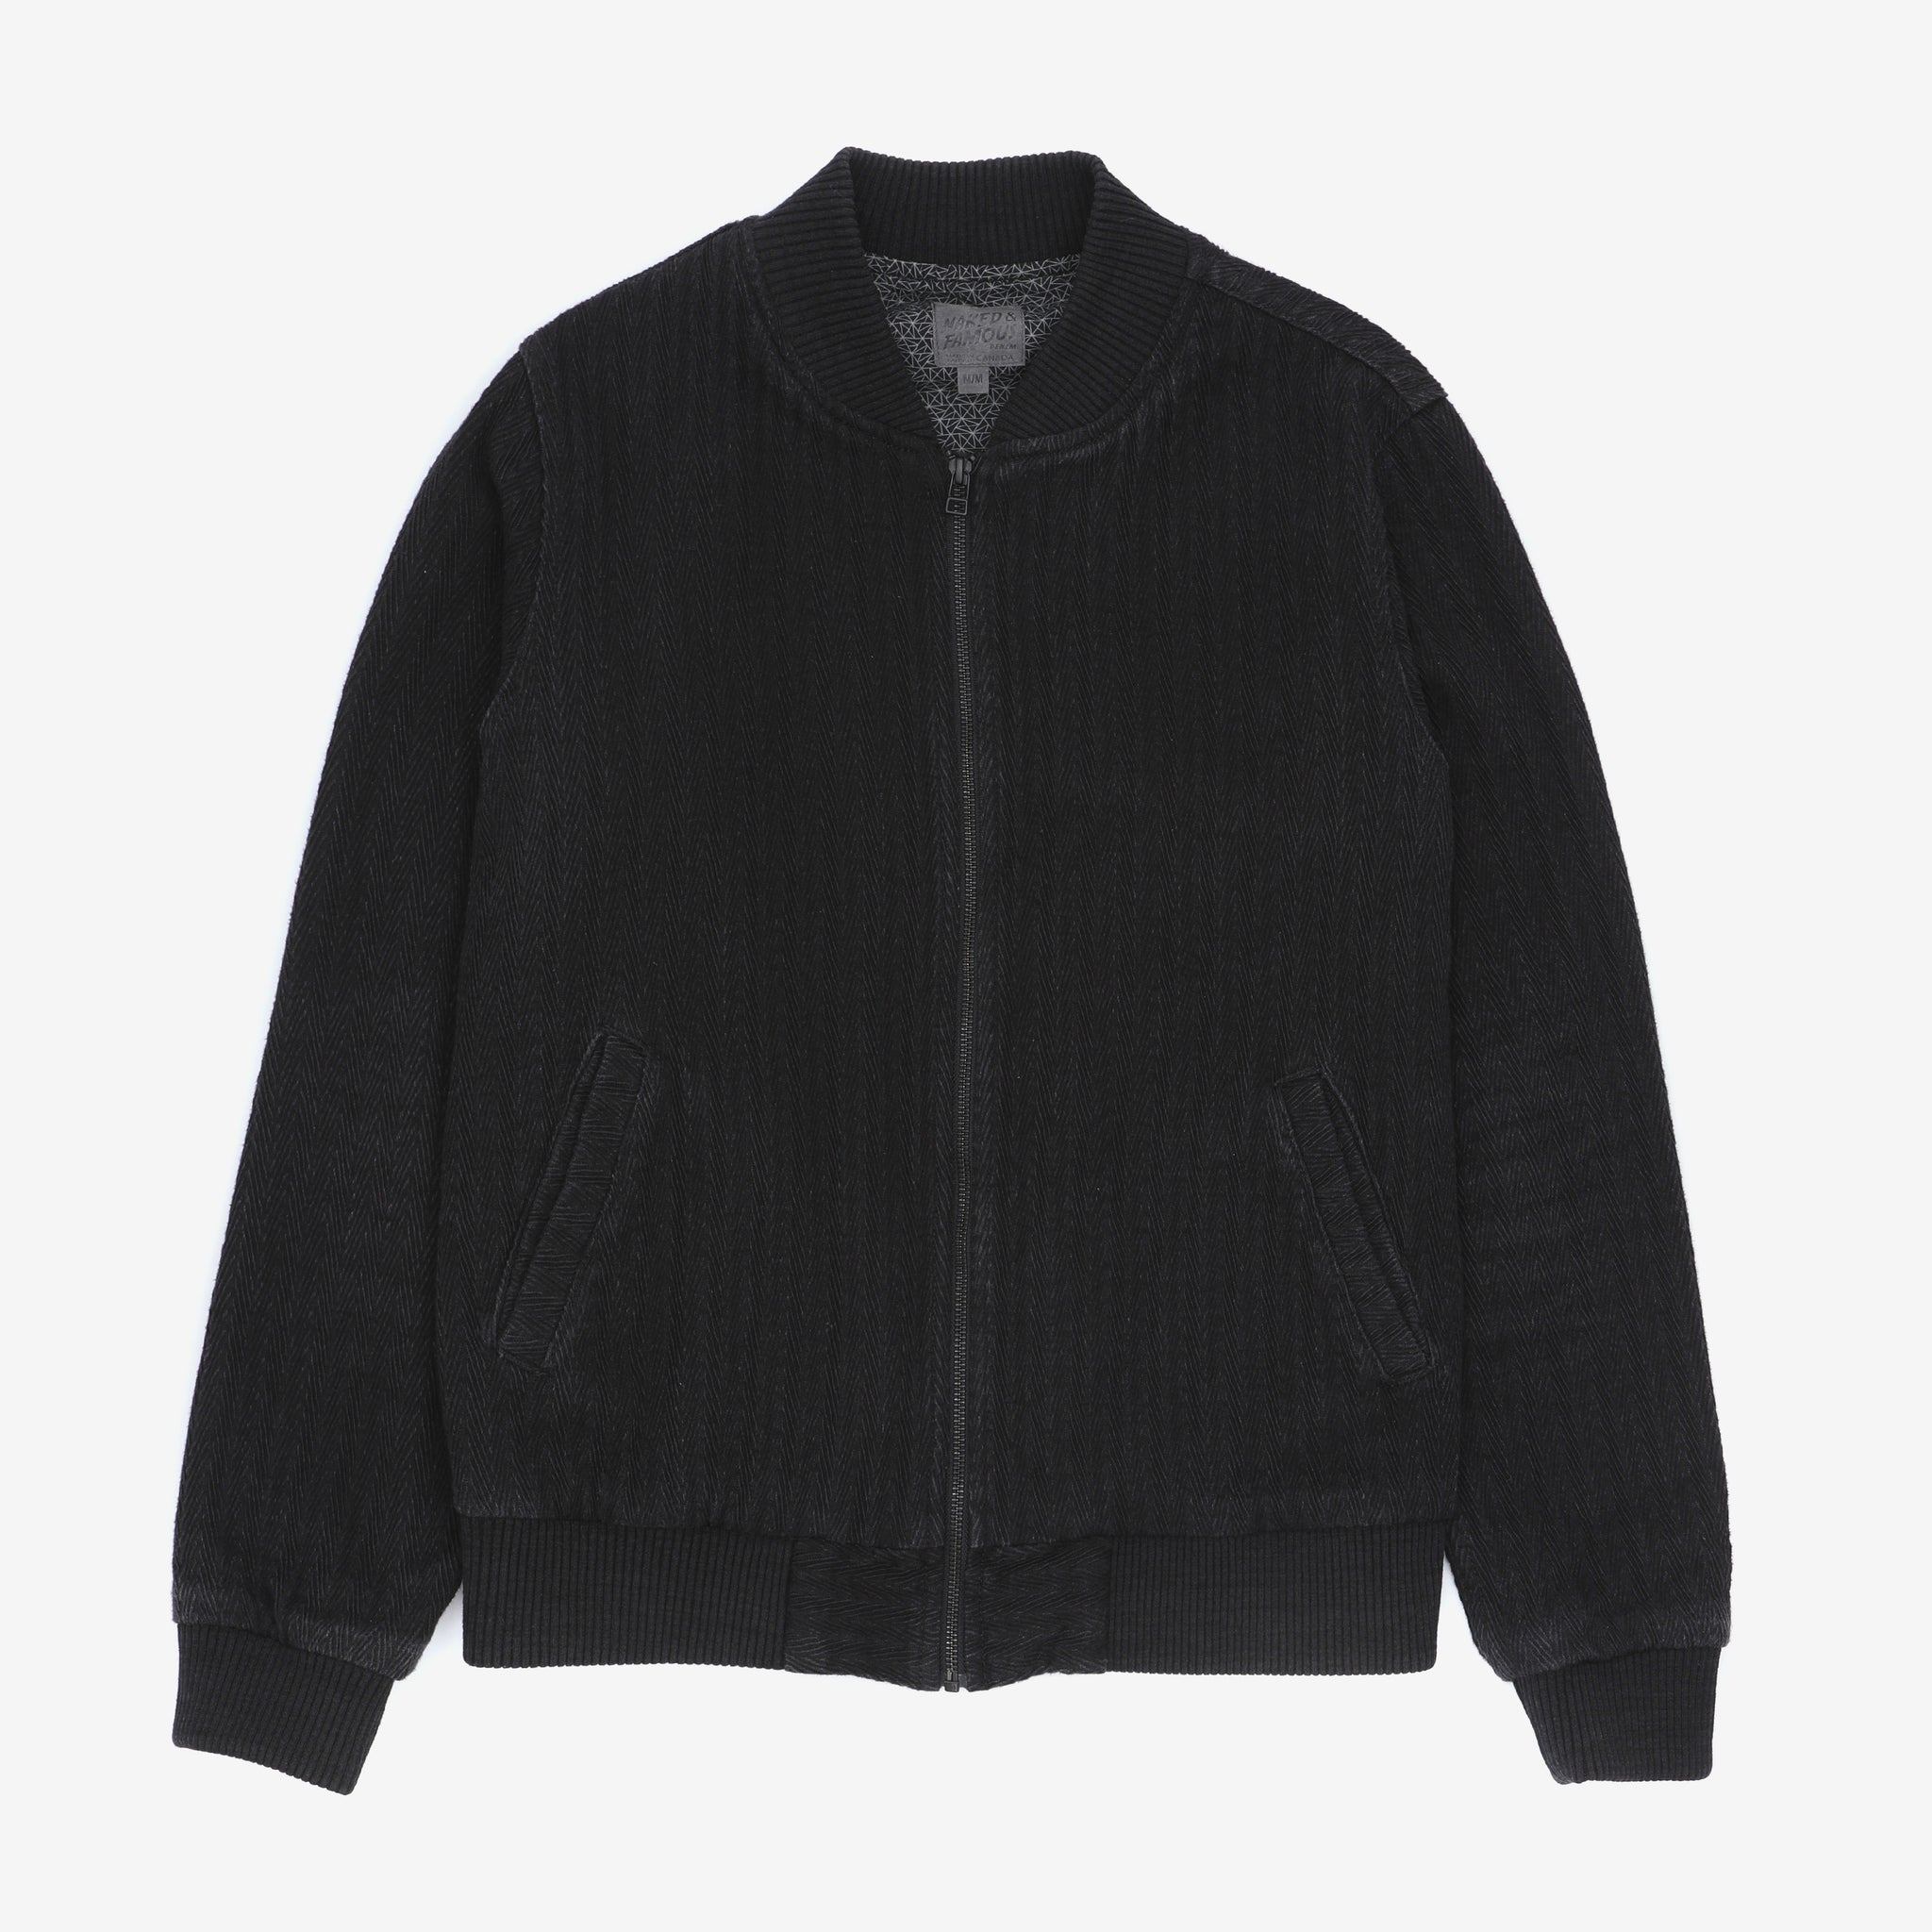 Naked & famous Textured Bomber Jacket